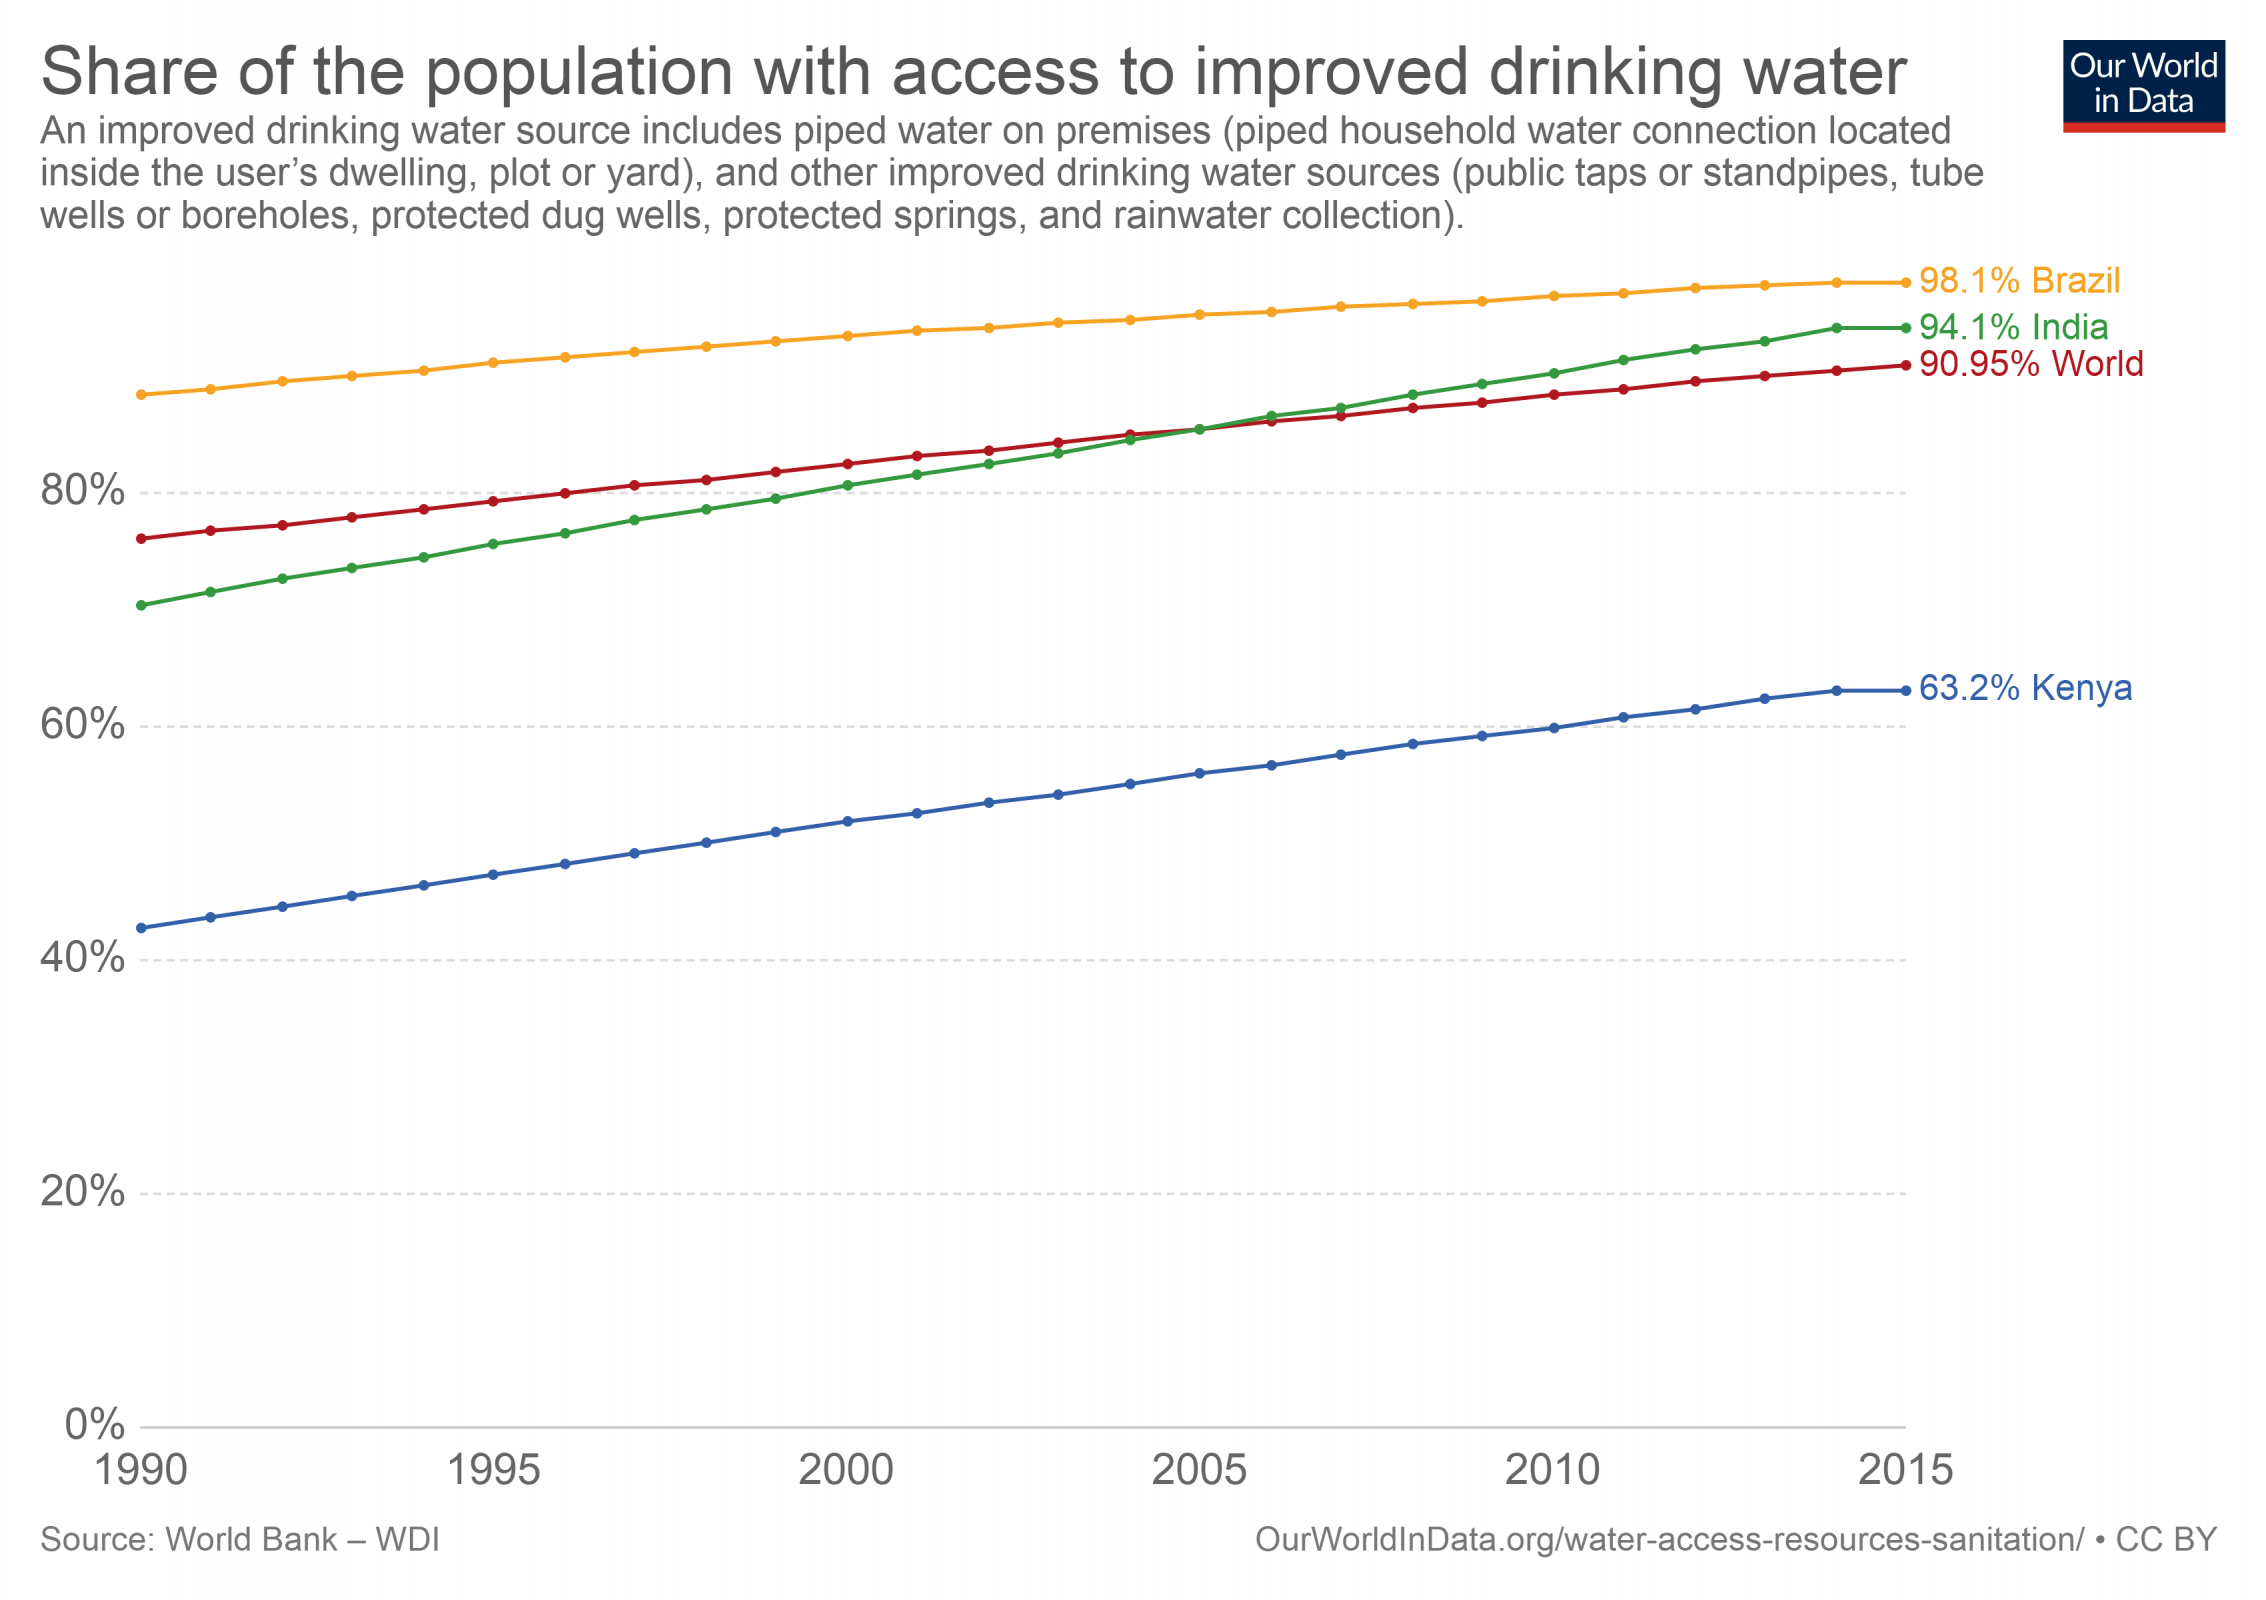 share-of-the-population-with-access-to-improved-drinking-water.png